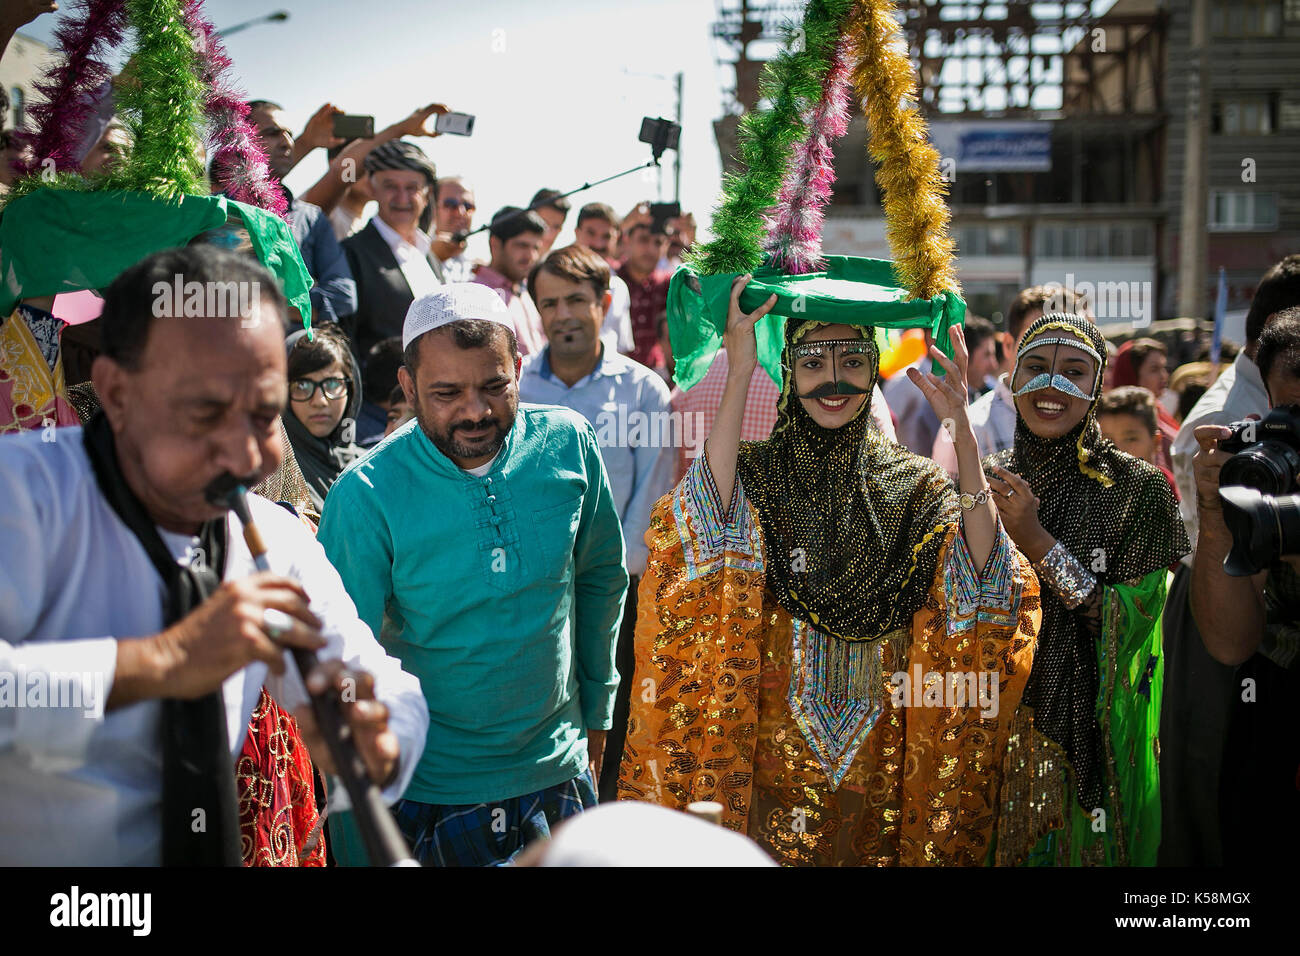 Marivan, Iran. 9th Sep, 2017. Performers take part in a parade of the 12th International Street Theater Festival in Marivan, western Iran, on Sept. 9, 2017. Credit: Ahmad Halabisaz/Xinhua/Alamy Live News - Stock Image